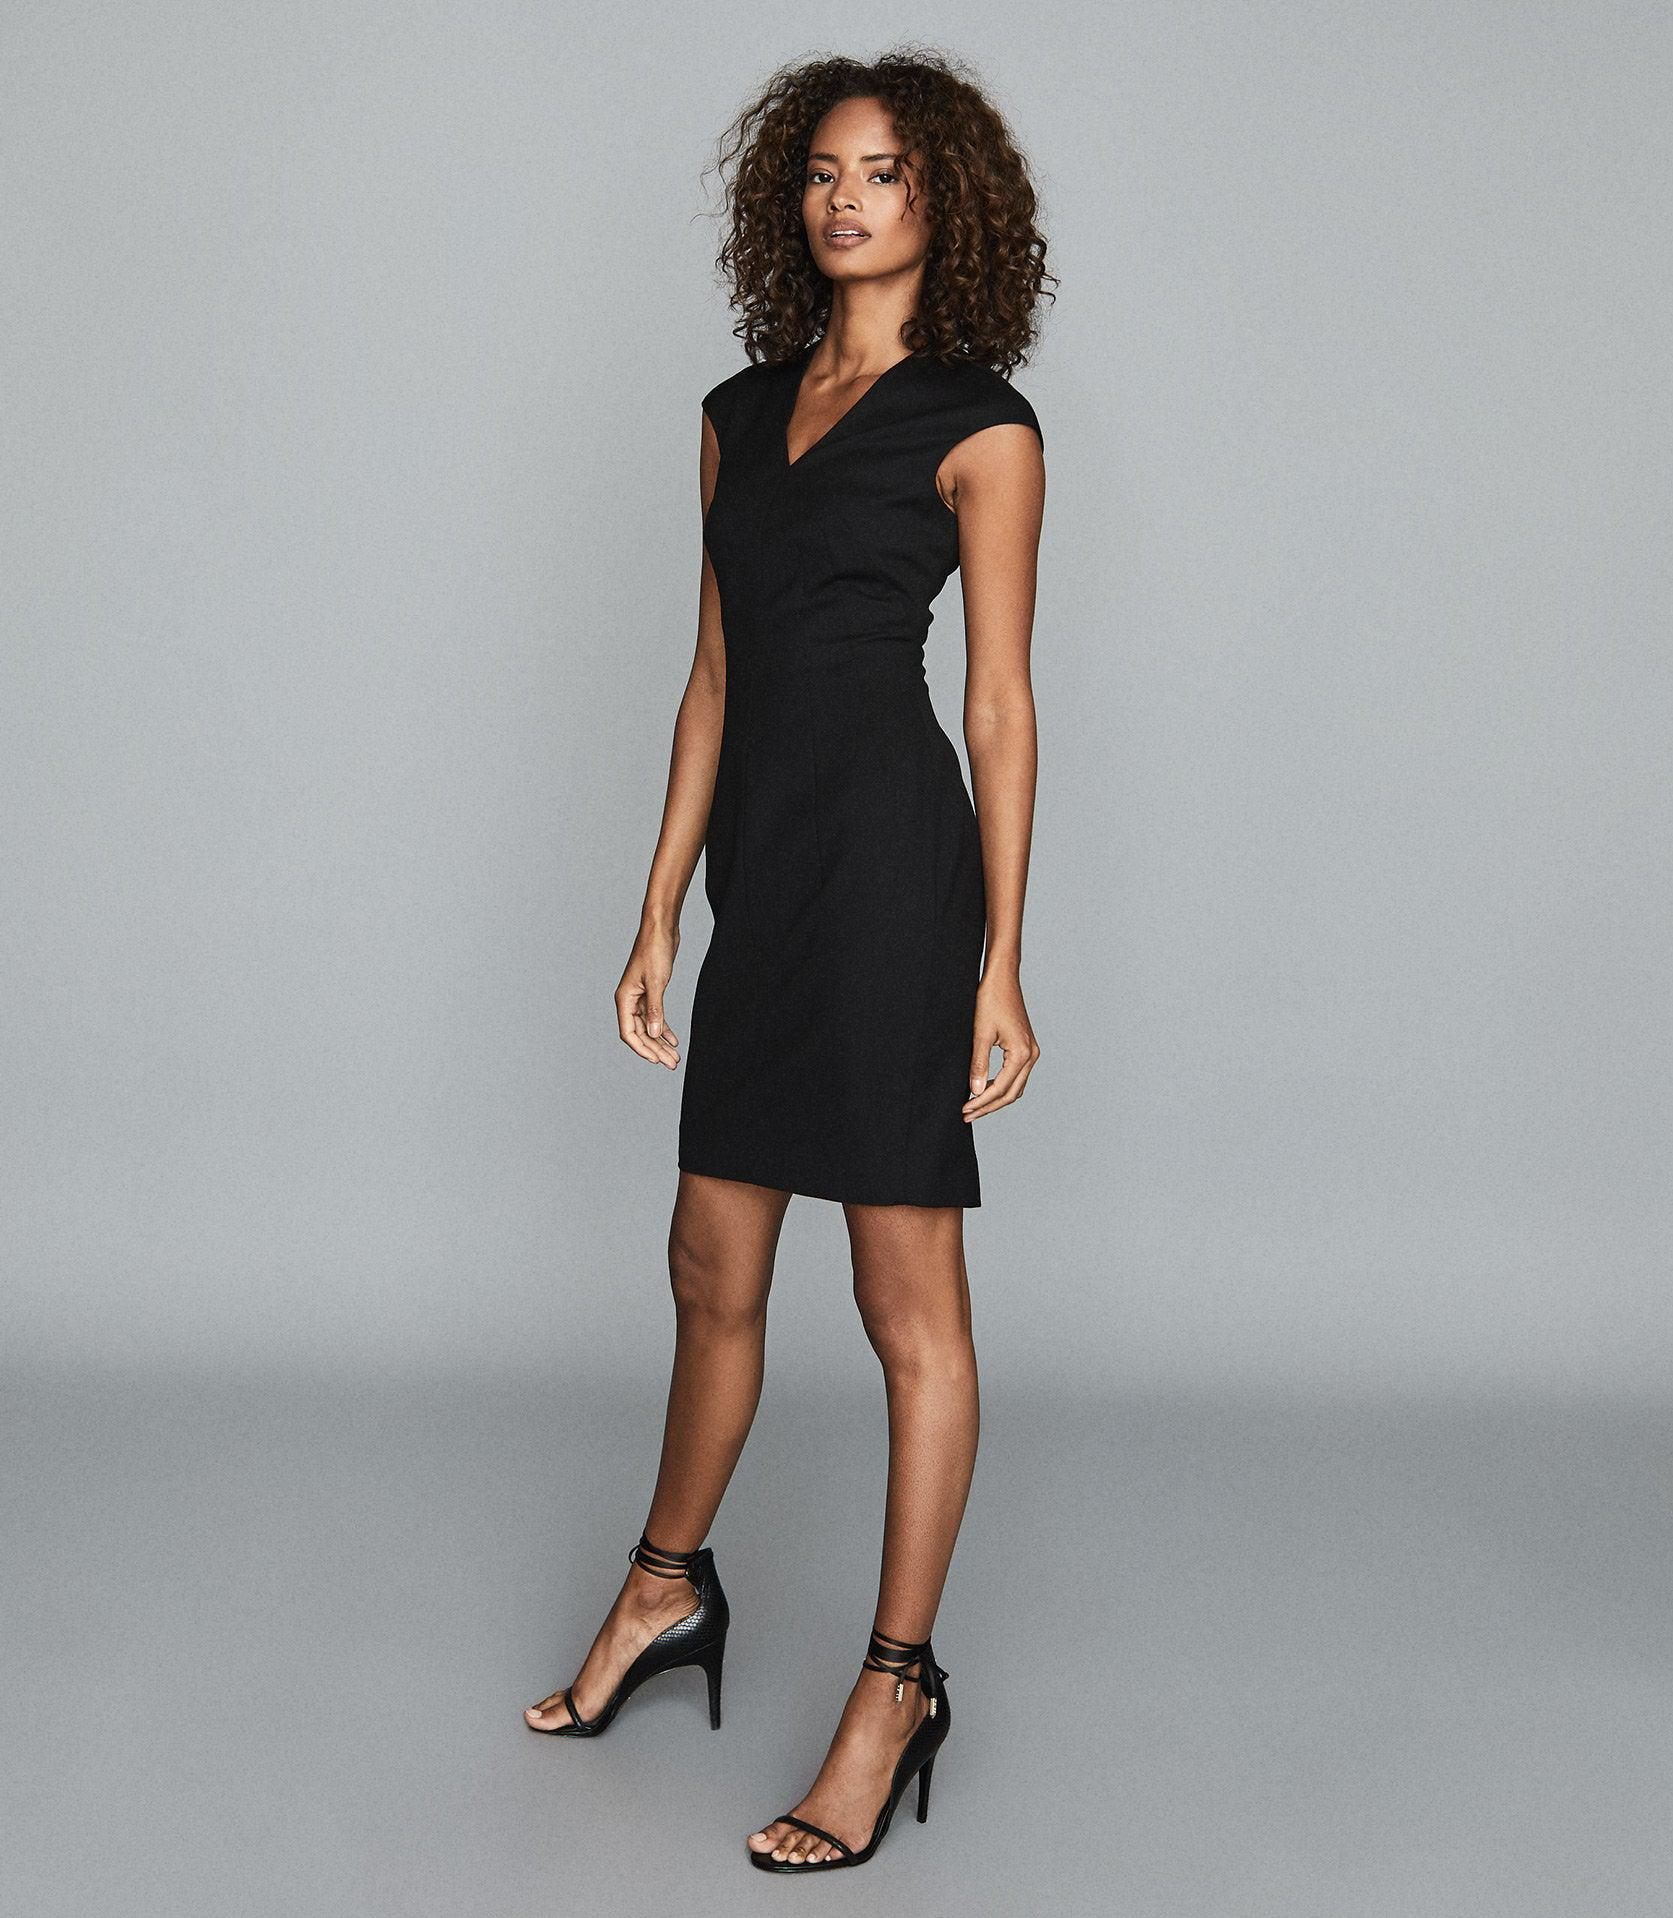 HAYES - TAILORED DRESS